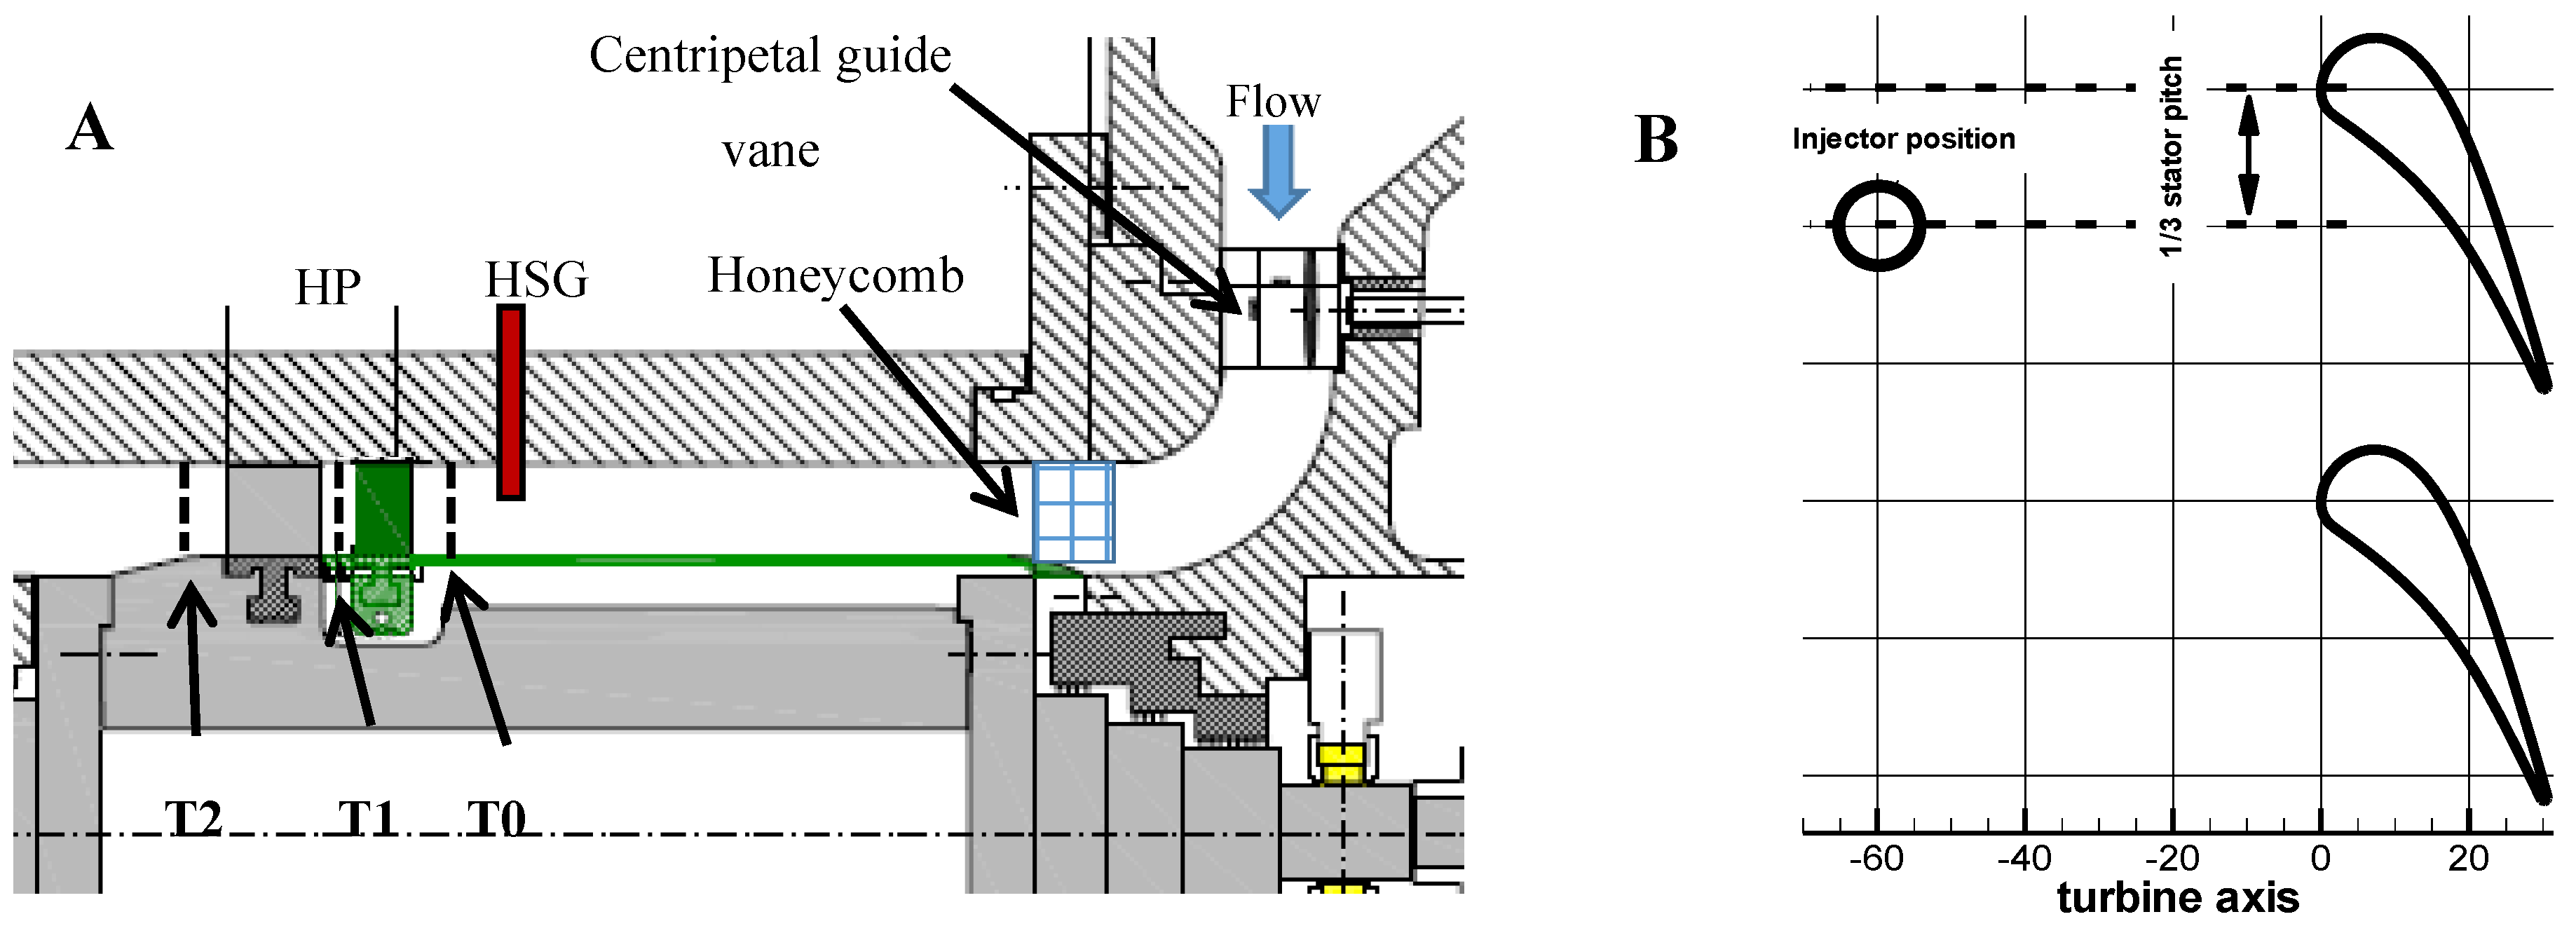 Ijtpp Free Full Text Hot Streak Evolution In An Axial Hp Turbine Diagram Showing The Operation Of Flow Turbojet Engine No